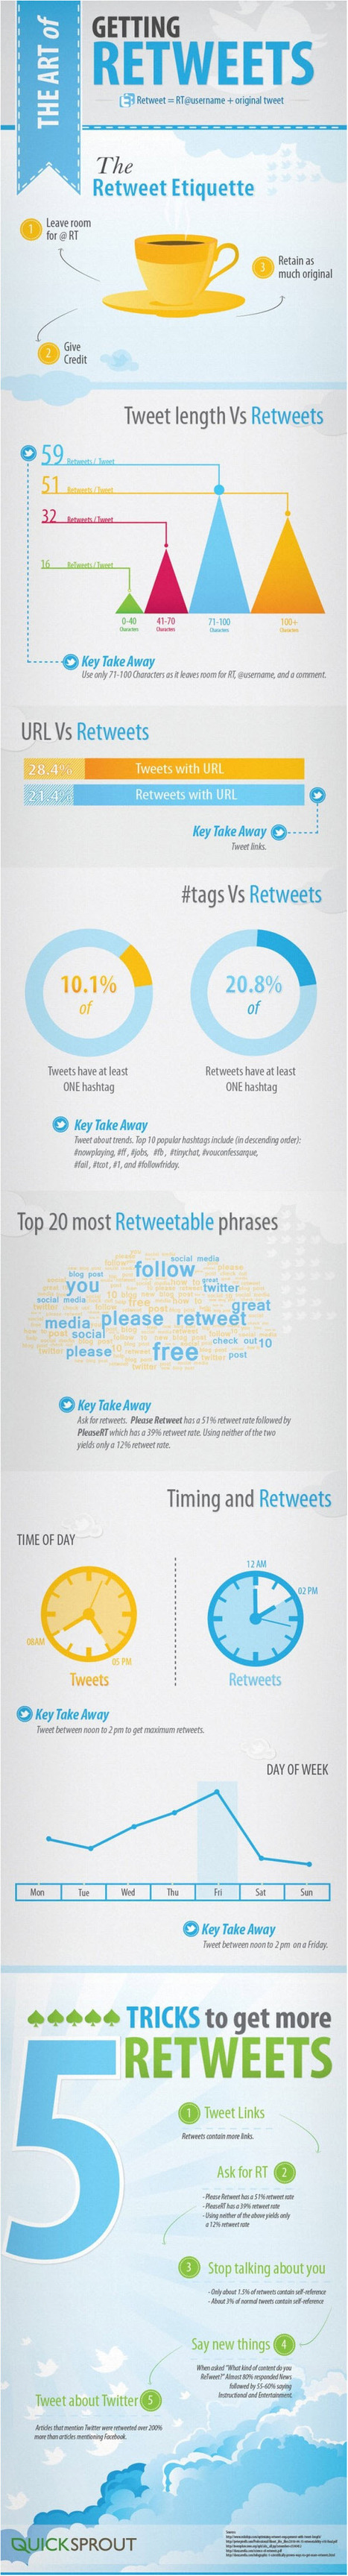 How to Get More Retweets on Twitter - Jeffbullas's Blog | In PR & the Media | Scoop.it